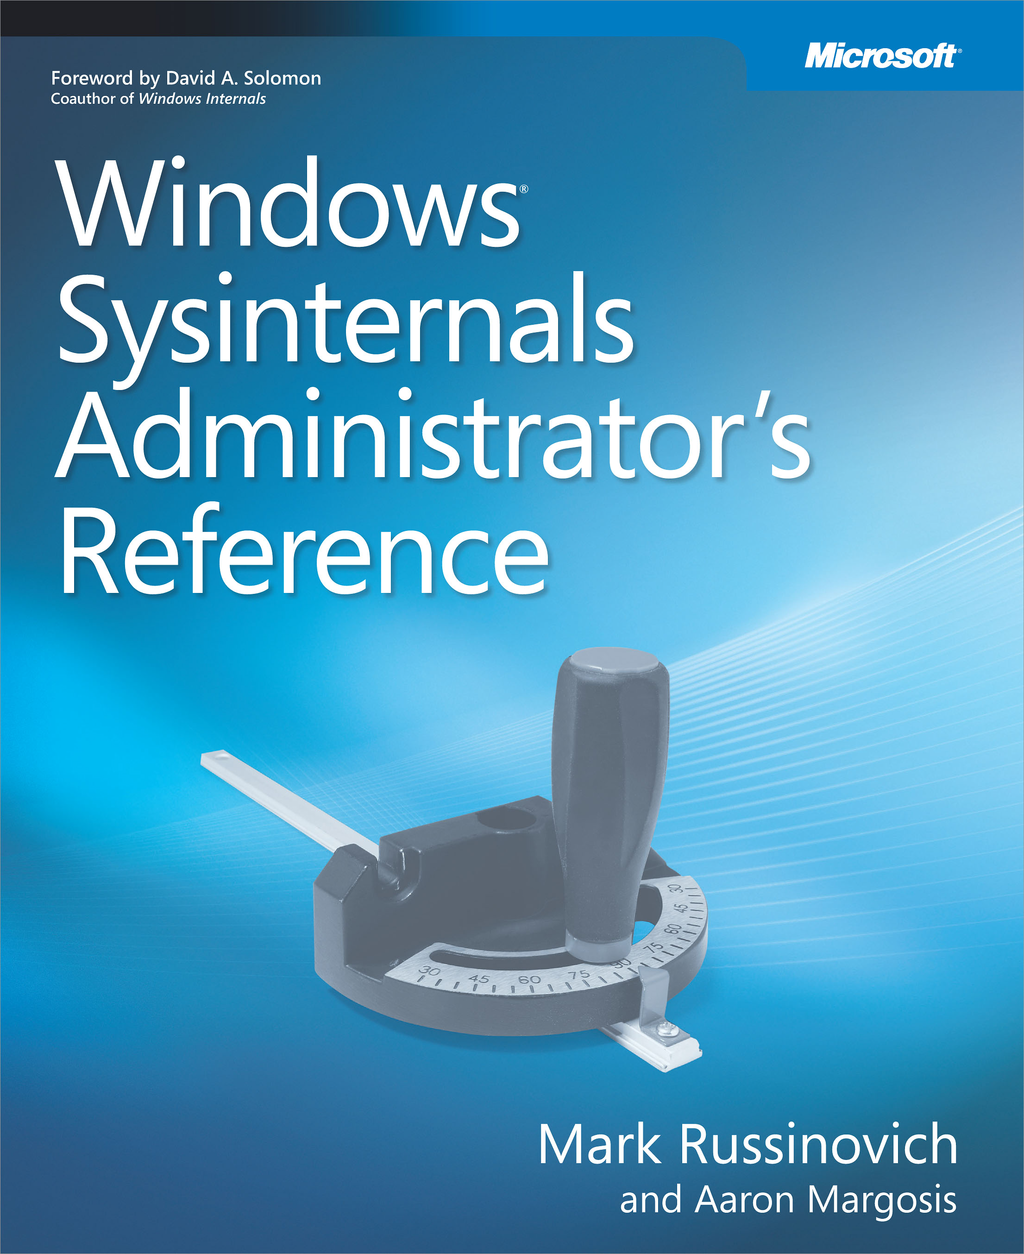 Windows® Sysinternals Administrator's Reference